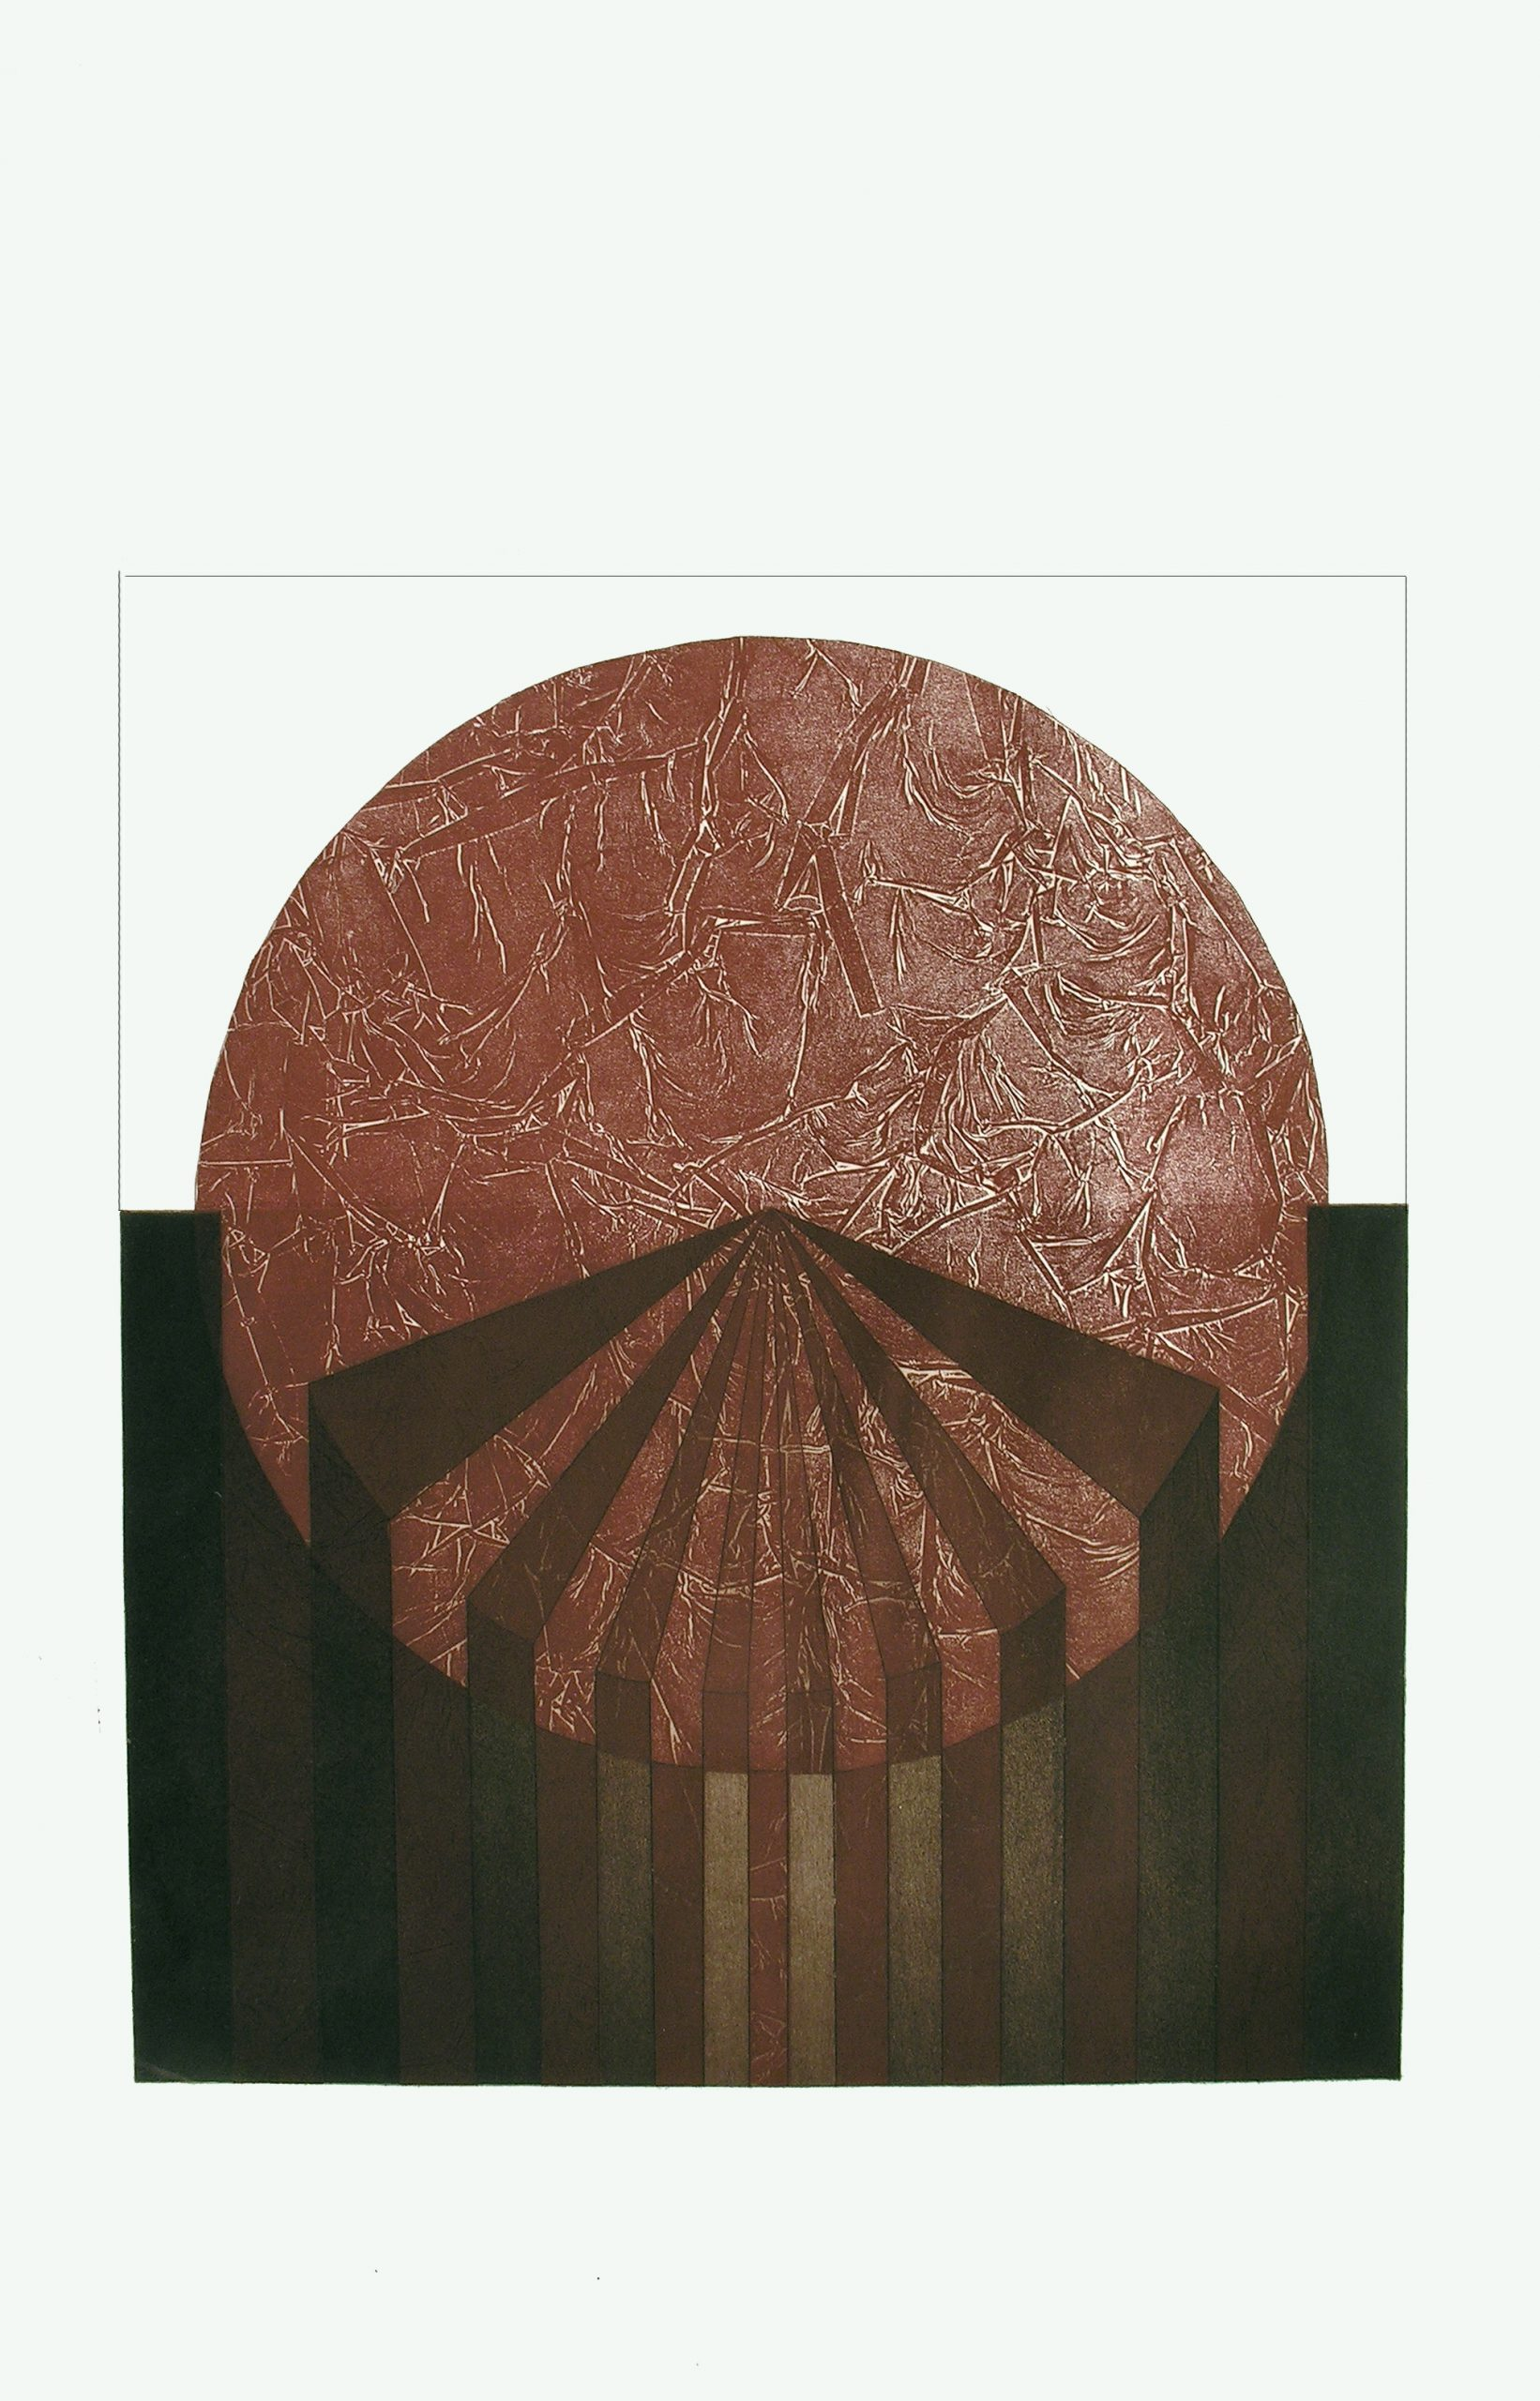 MENHAT HELMY (1925 – 2004) To the Point, 1978. Etching on paper 74 x 50 cm